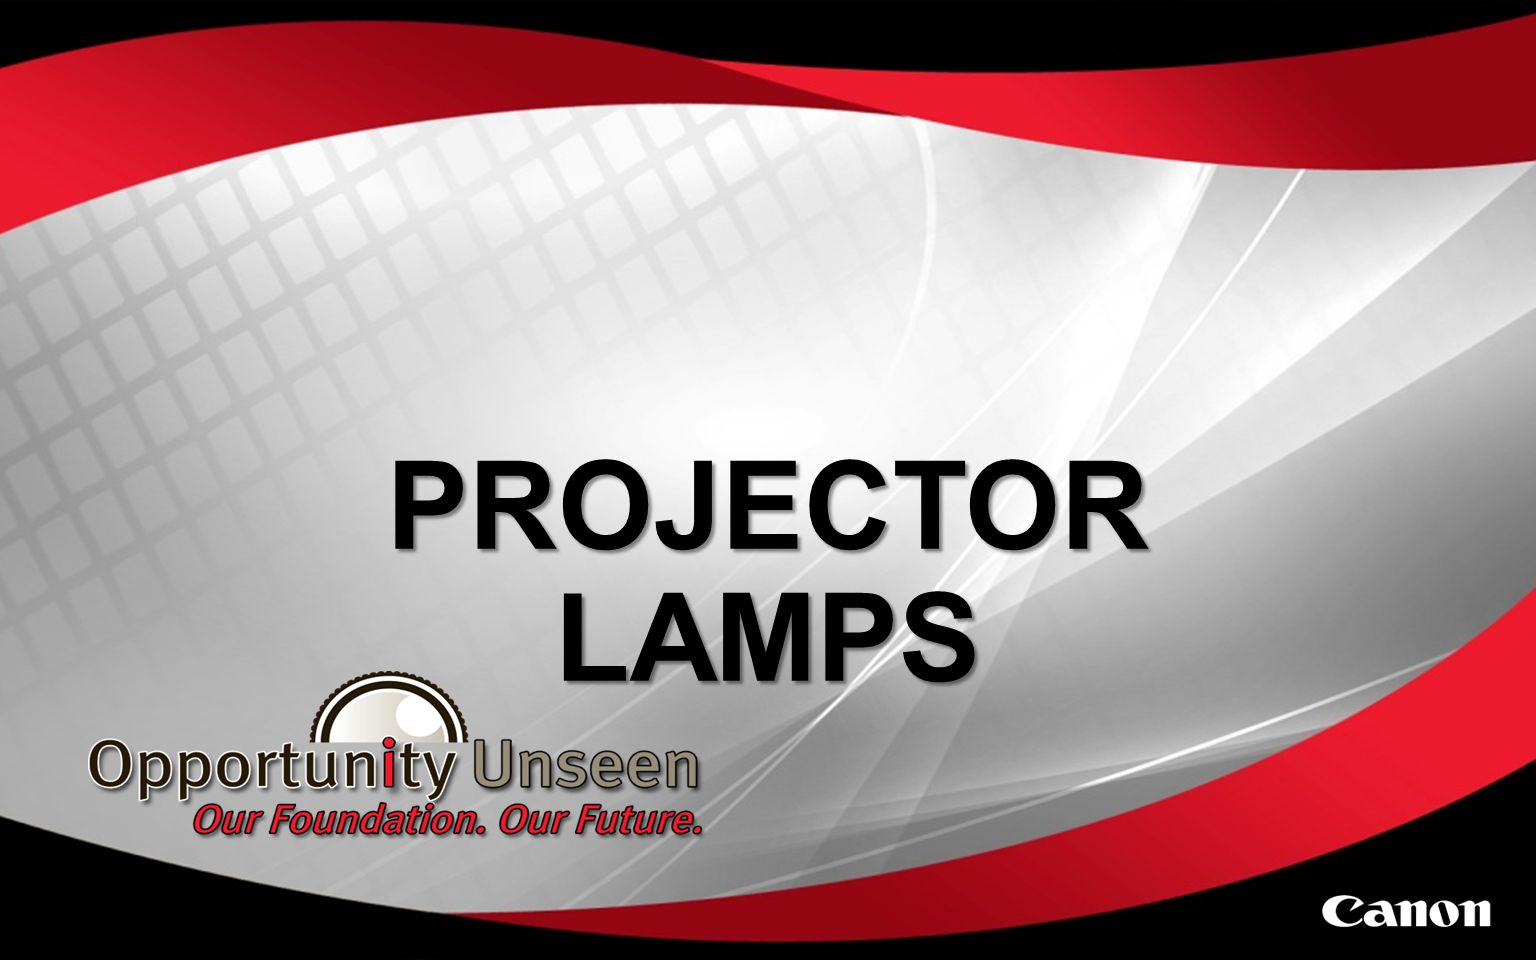 What is a Projector Lamp